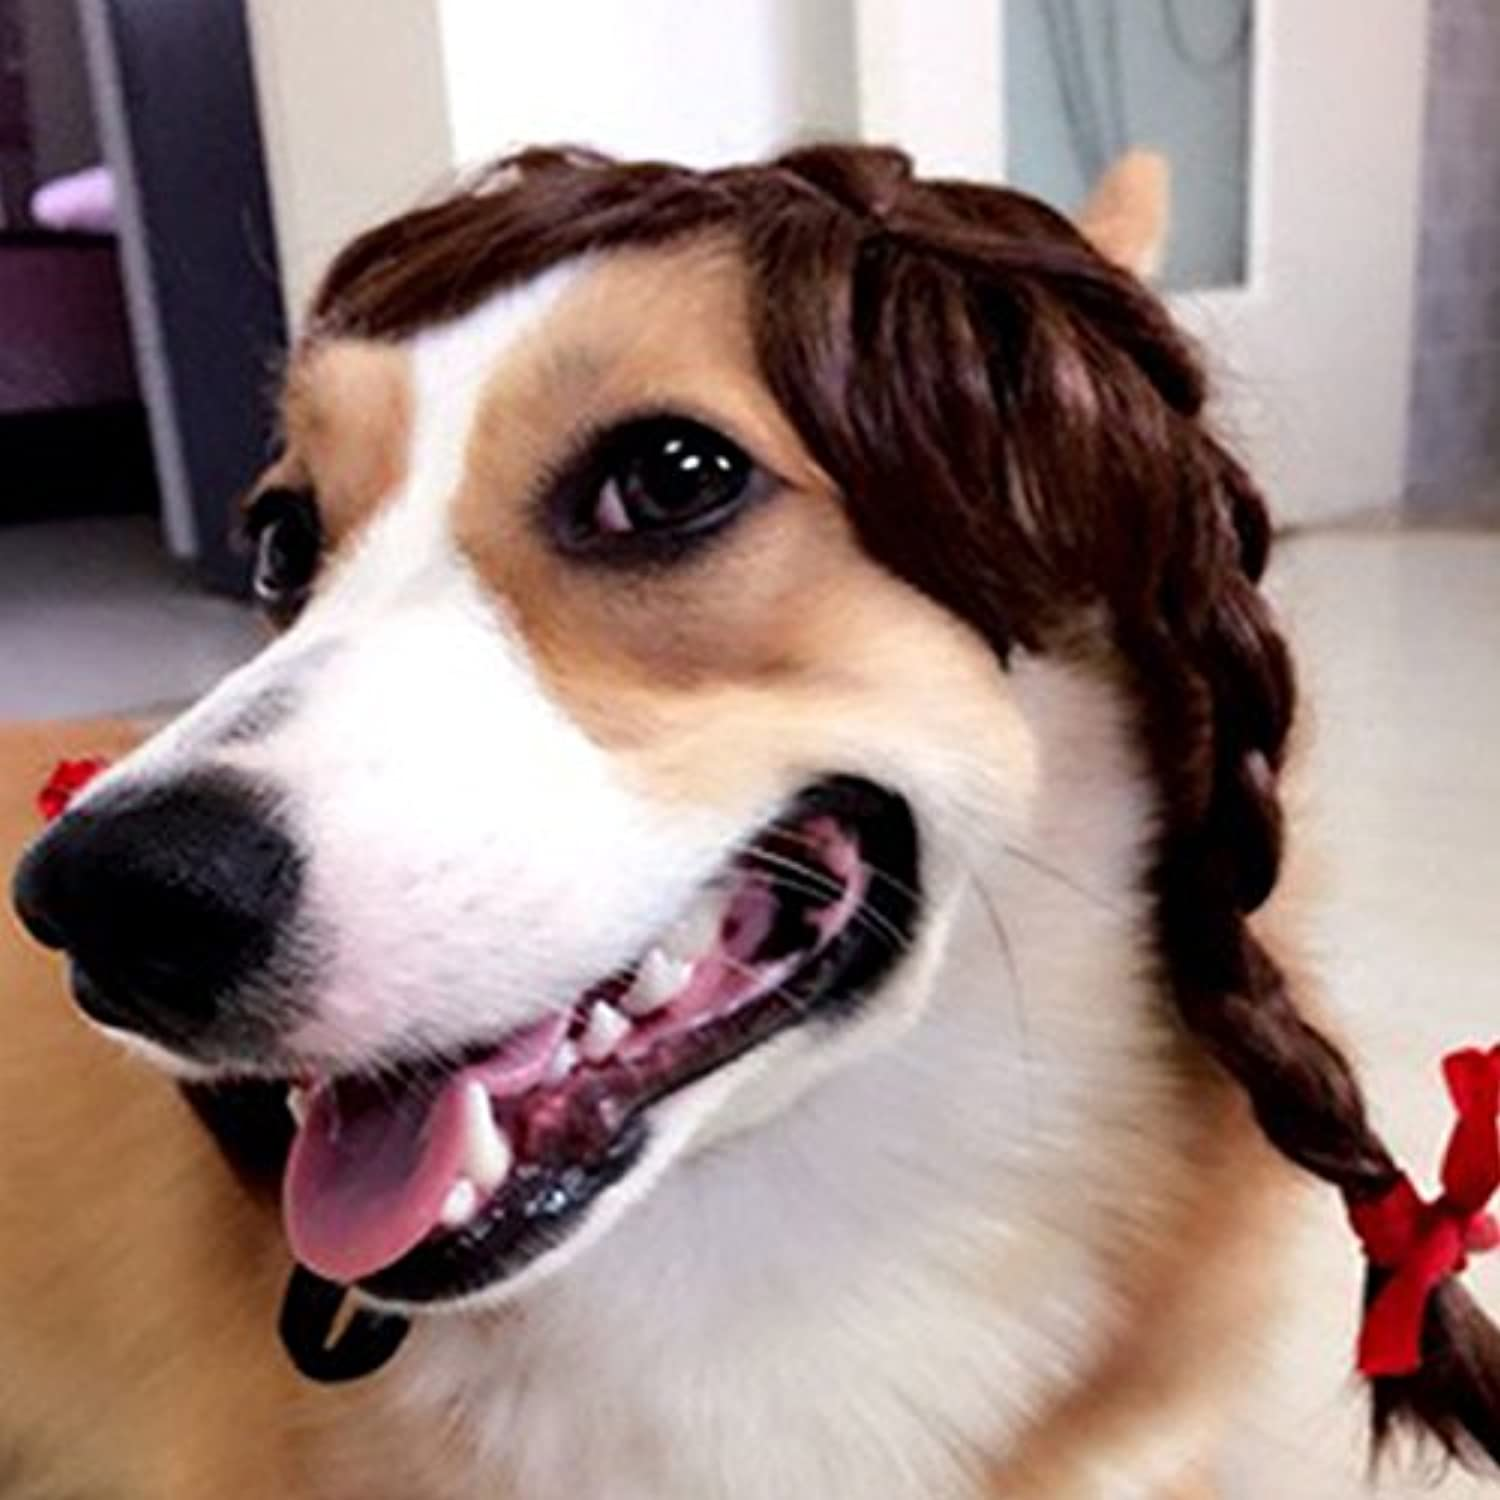 Dogs Wigs Hair Cosplay Accessories Funny for Pets Cats Wigs Halloween Supplies Interesting postiche cheveux Afro benodigdheden